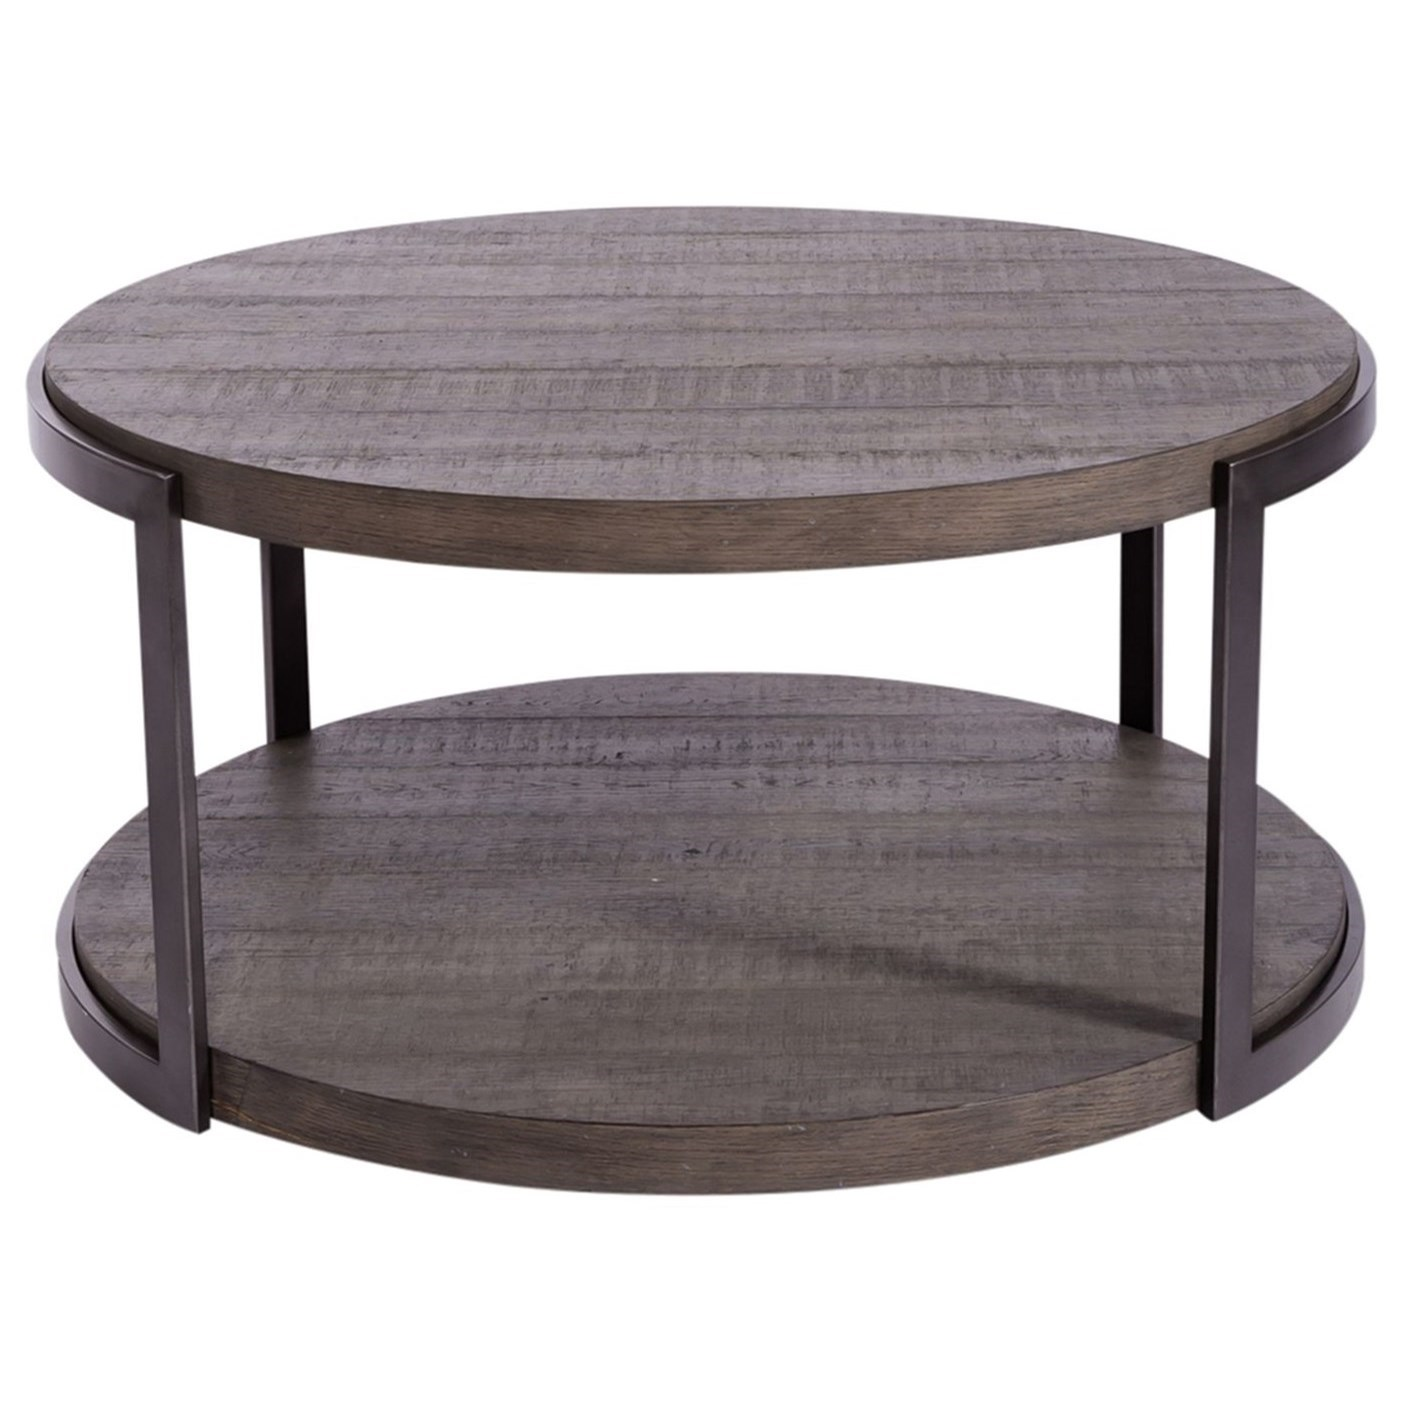 Modern View Round Cocktail Table by Liberty Furniture at VanDrie Home Furnishings